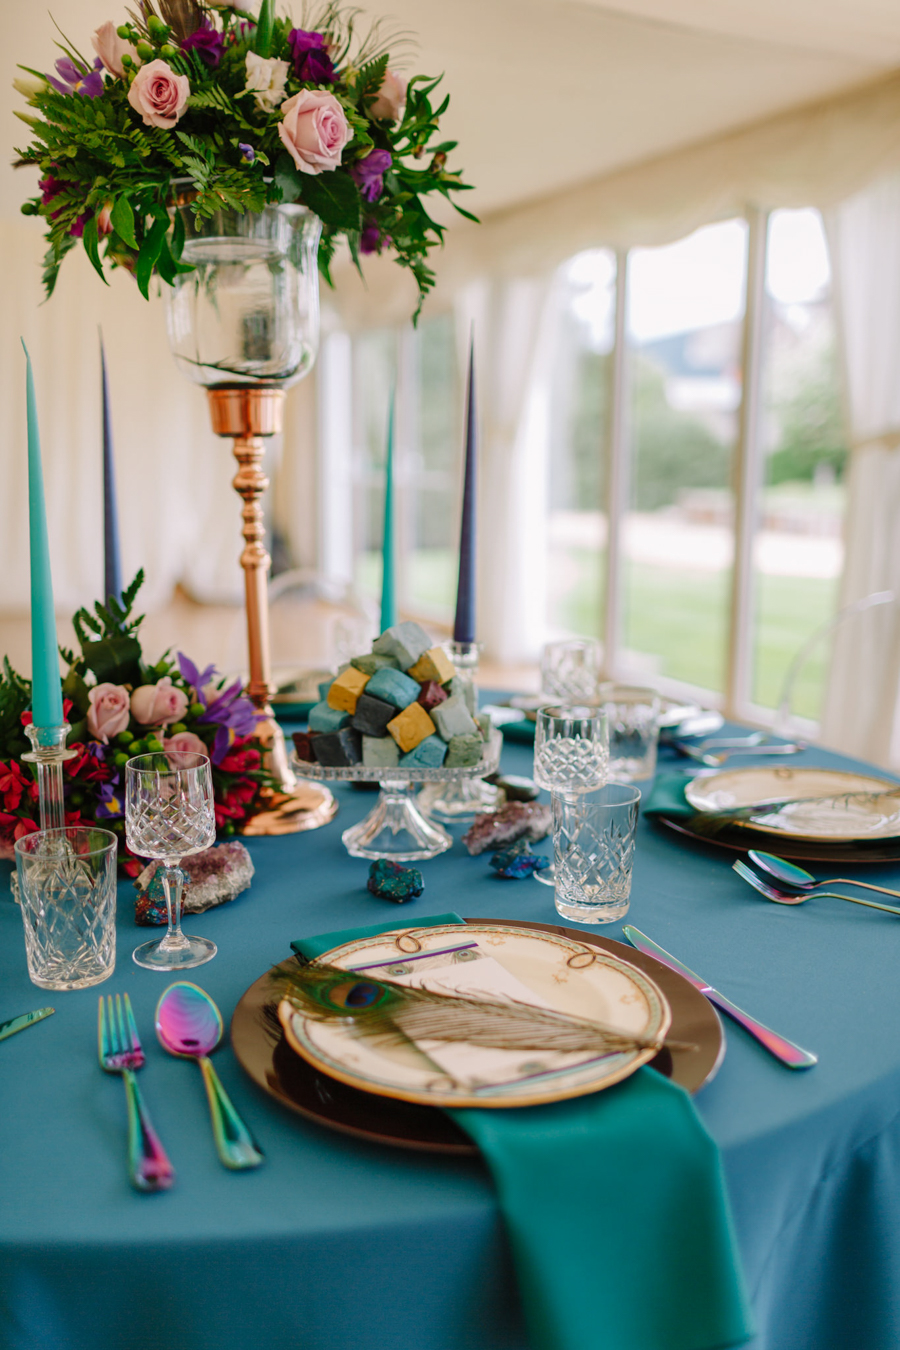 Teal and purple peacock wedding ideas by planner Karen Luxford, image by Sarah Wayte Photography (19)